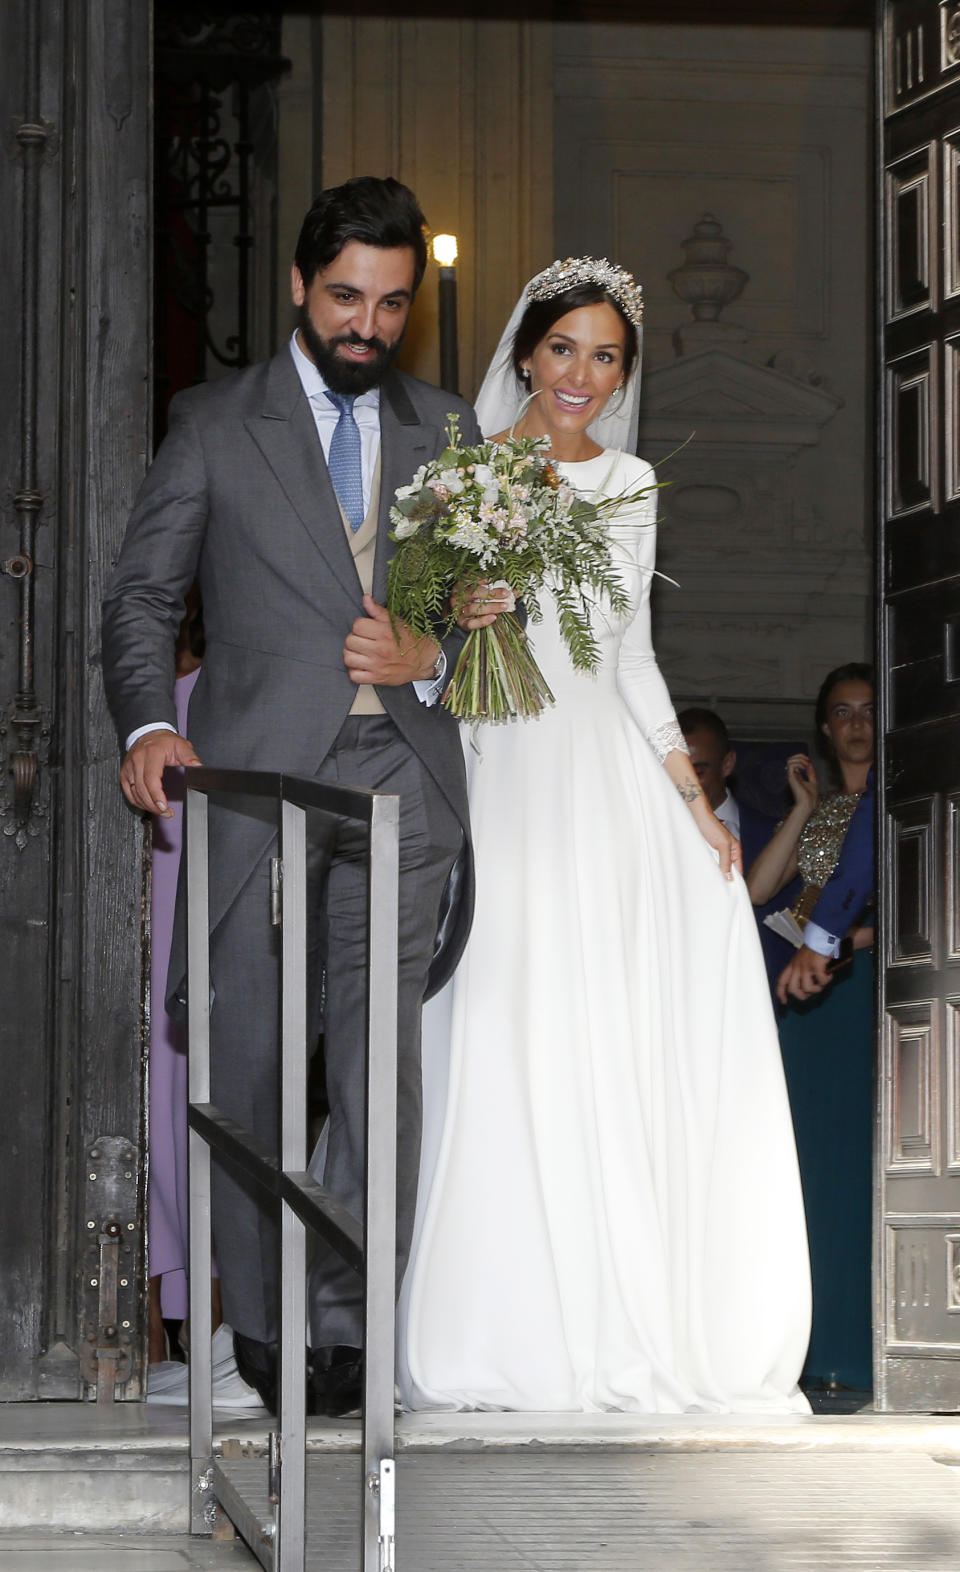 SEVILLE, SPAIN - JUNE 29:  Rocío Osorno wedding at at Seville's Cathedral on June 29, 2019 in Seville, Spain. (Photo by Europa Press Entertainment/Europa Press via Getty Images)